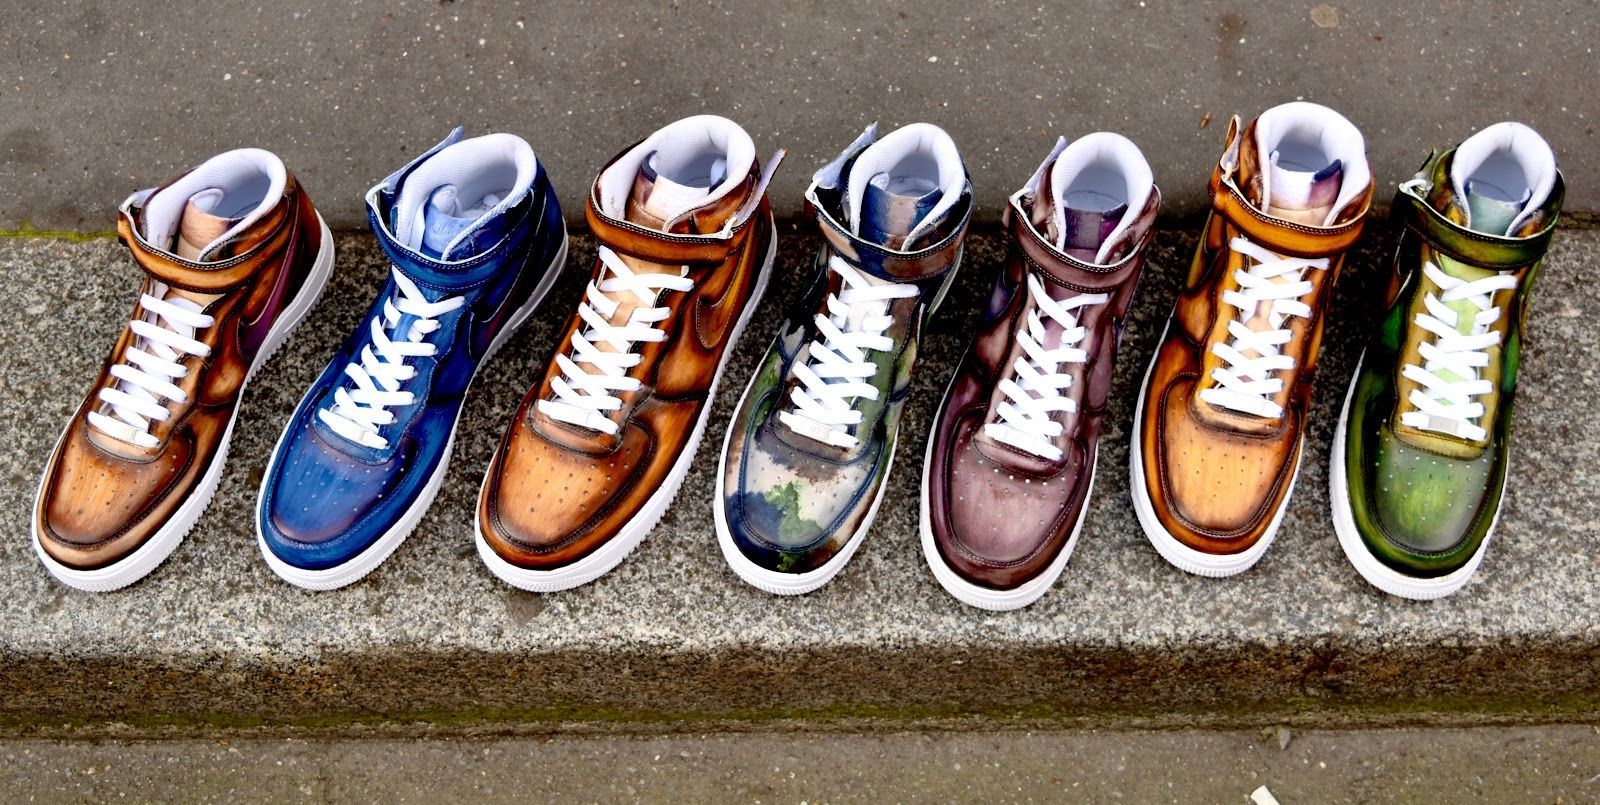 patina by Paulus Bolten on air force one mid | Sneakers